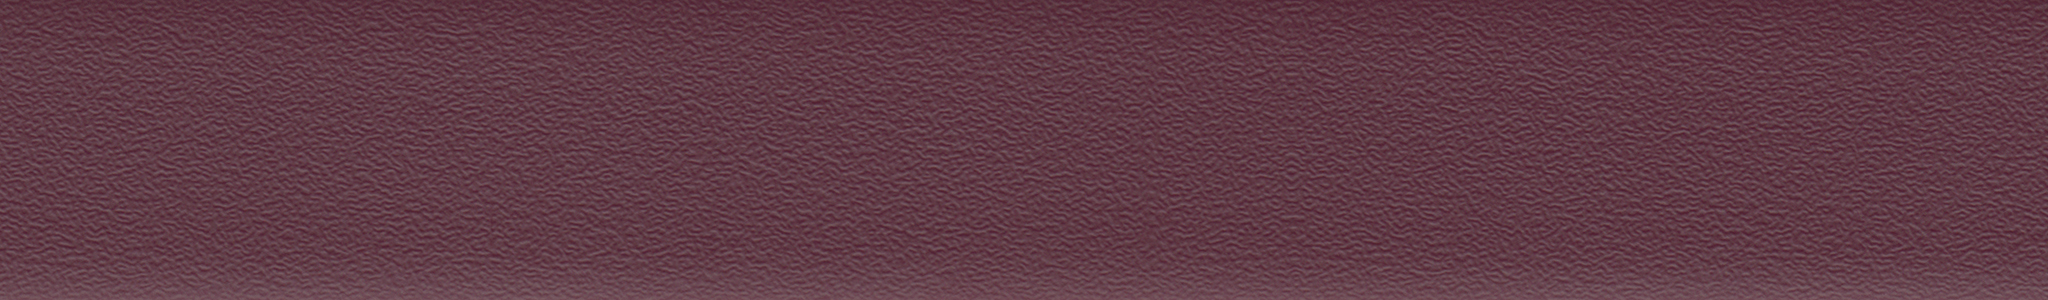 HU 151410 Chant ABS Violet Perle 101